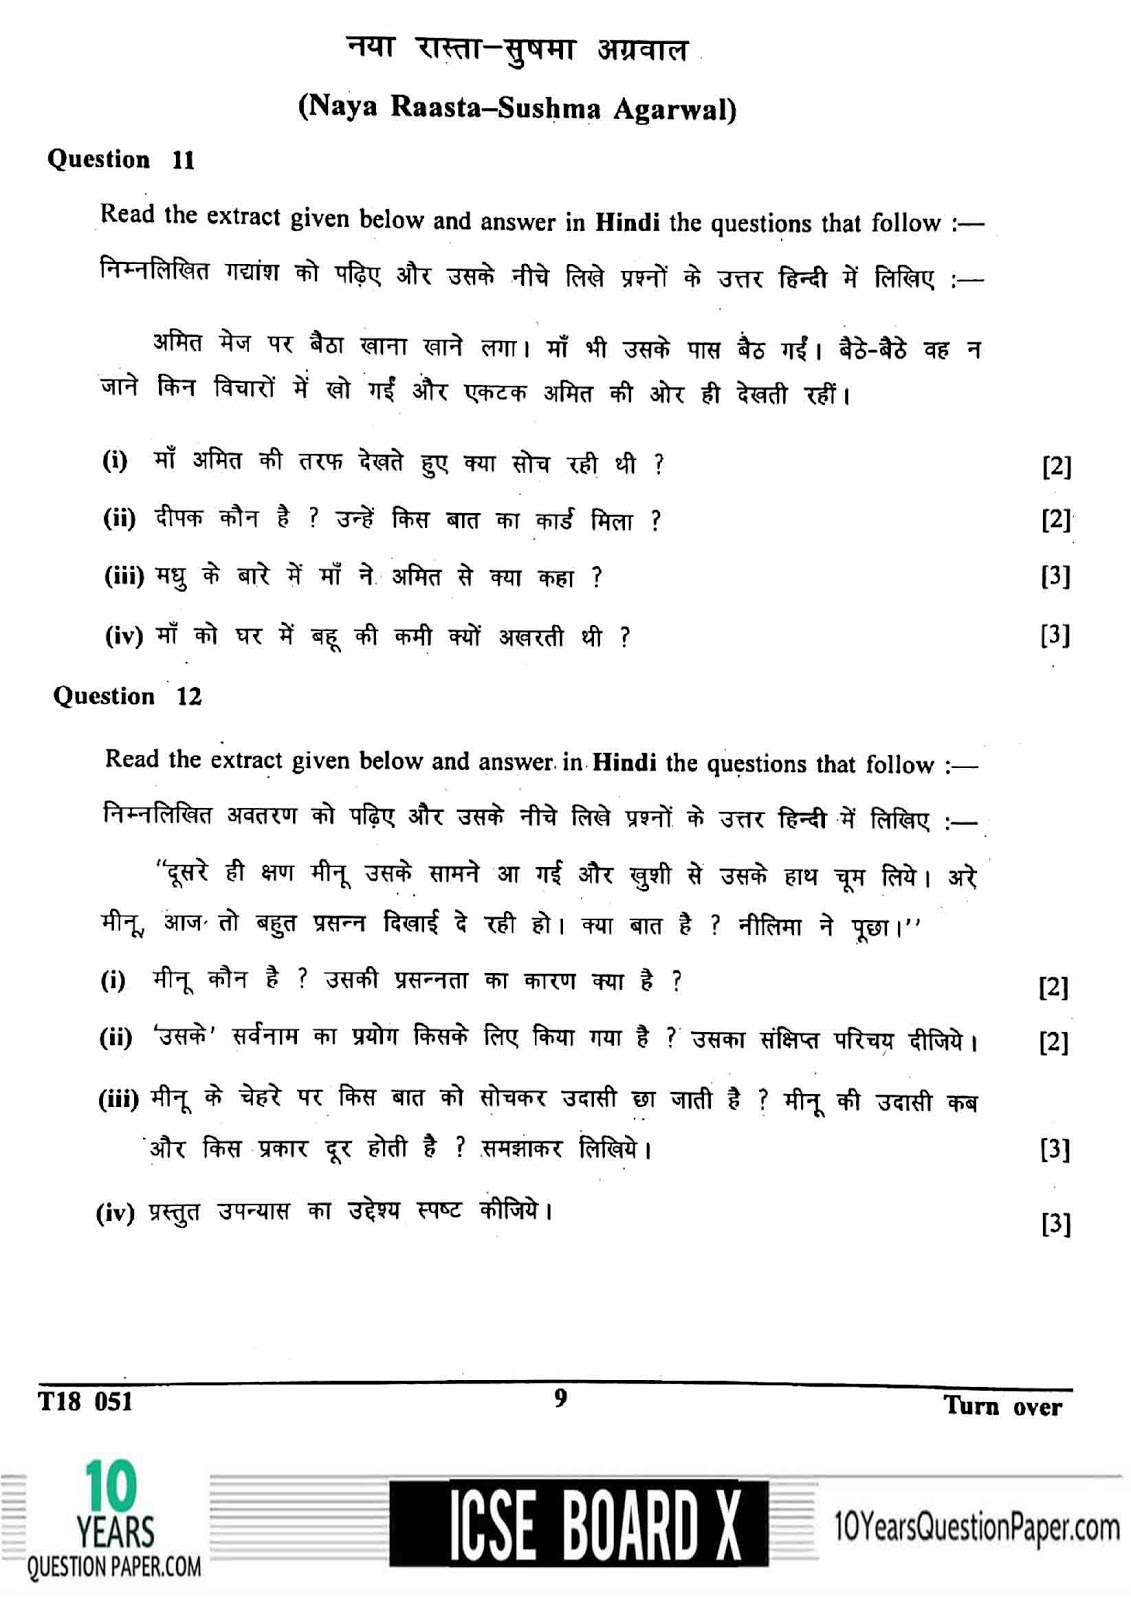 ICSE Board 2018 class 10th Hindi question paper page-09